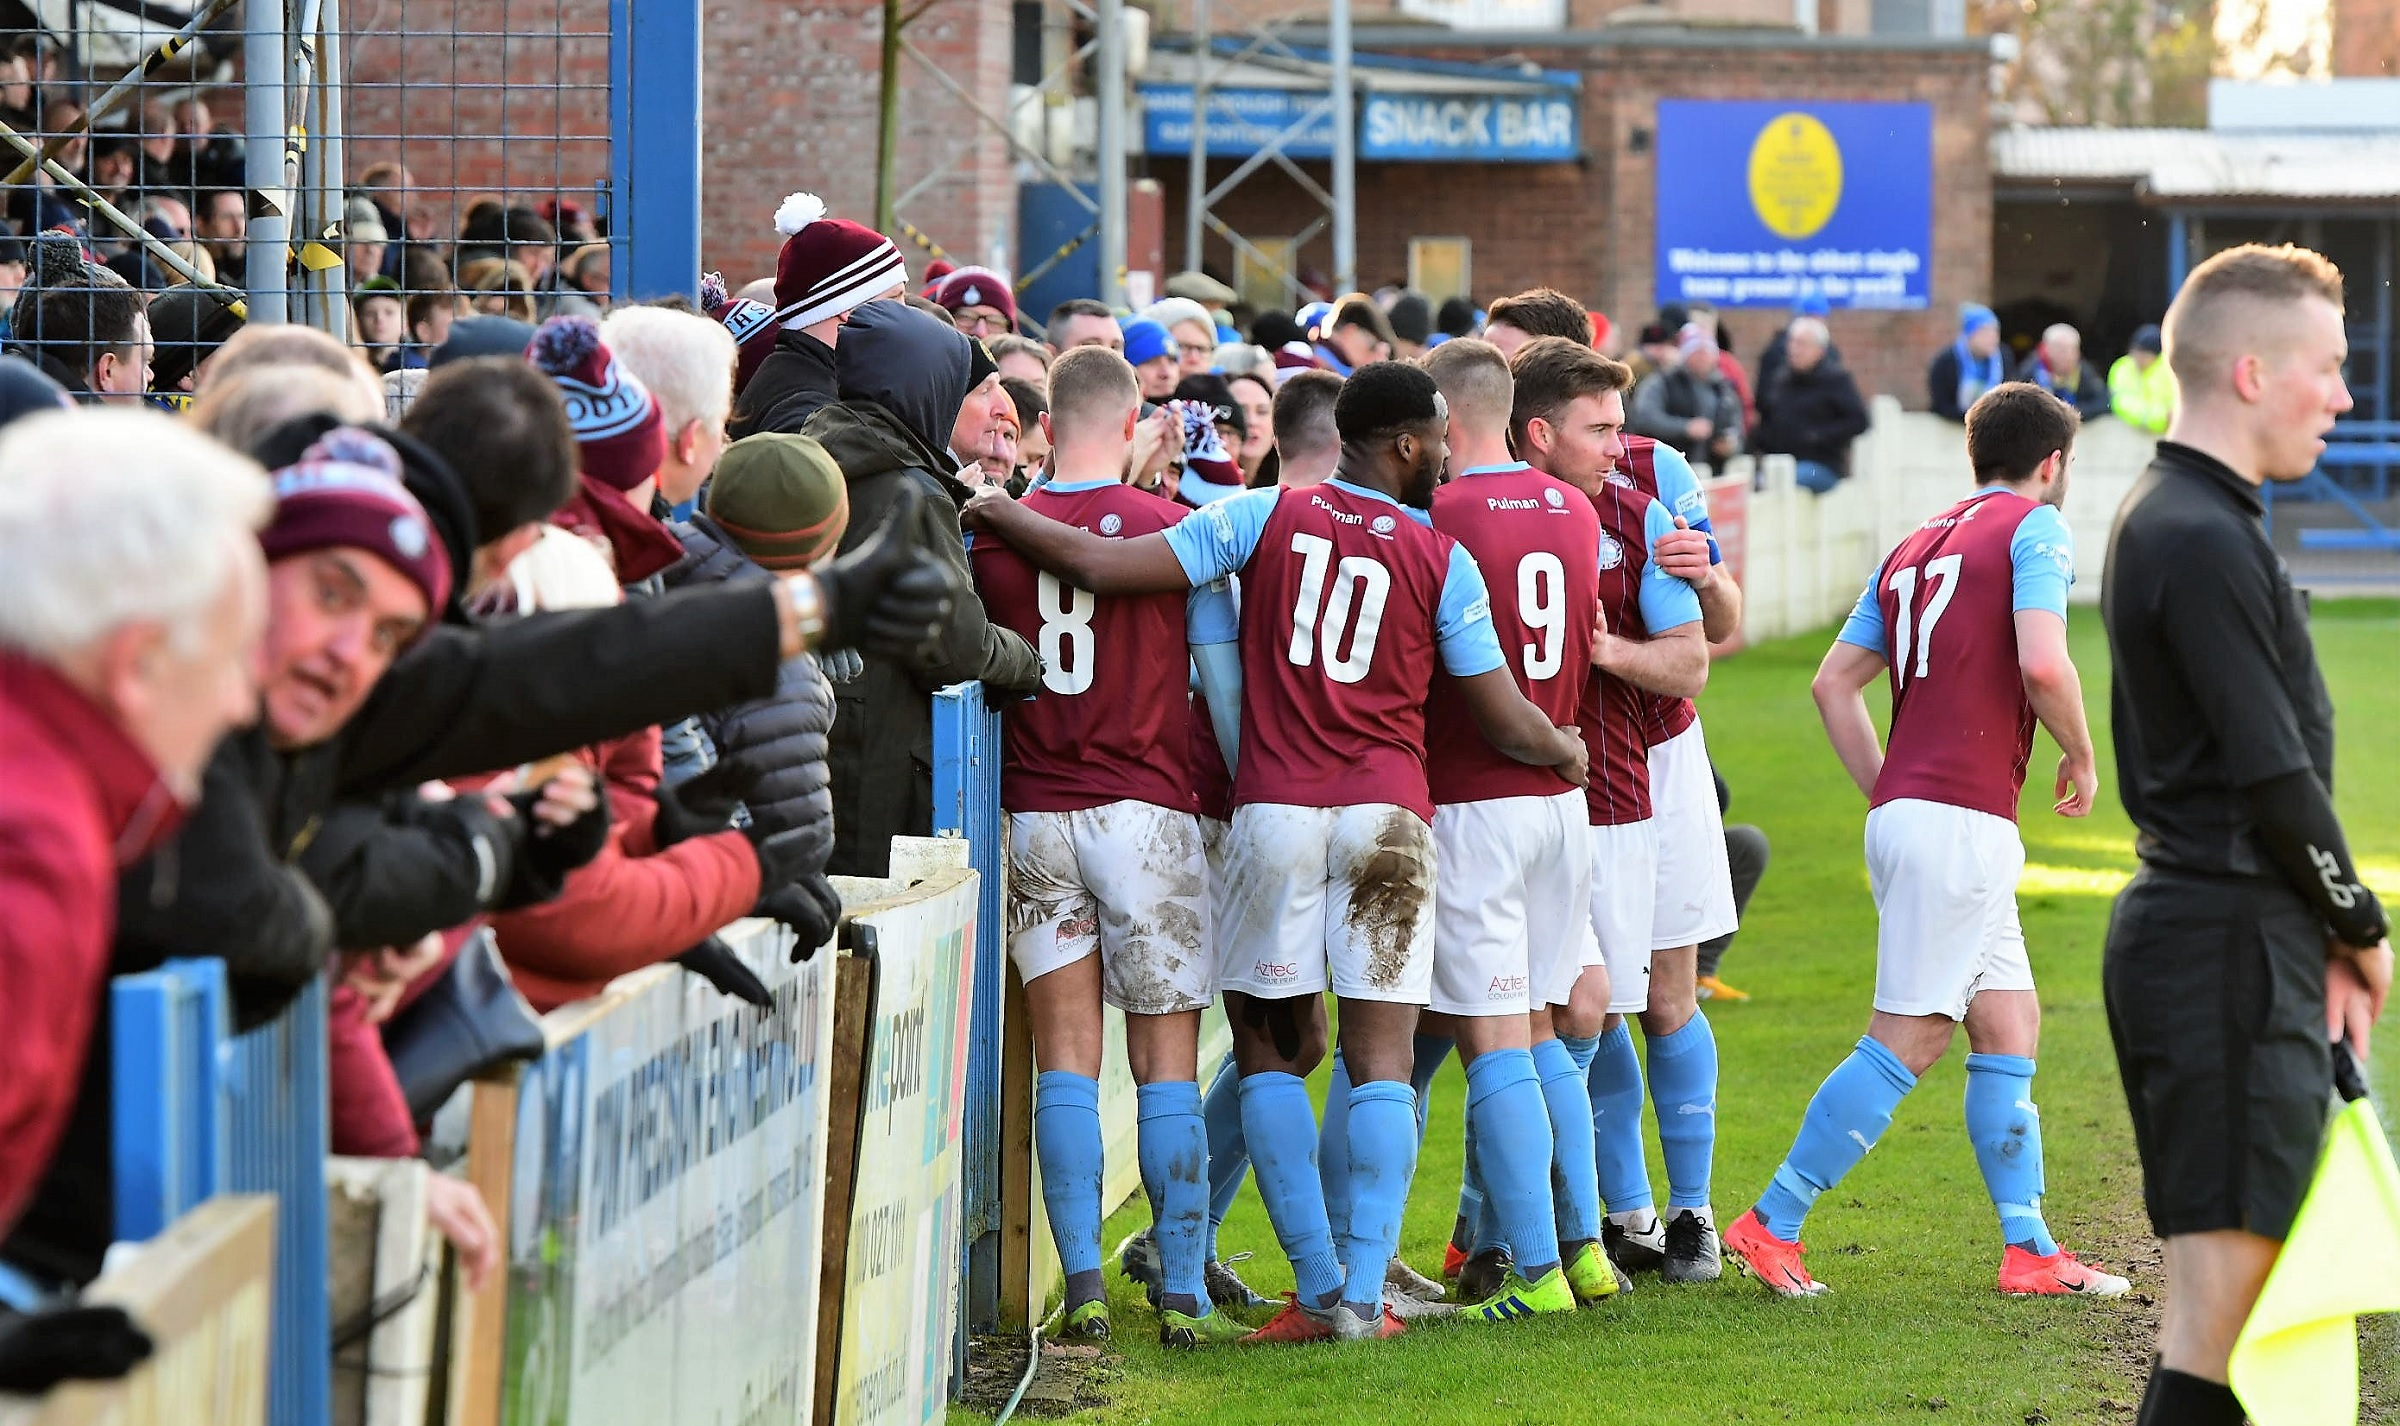 Gainsborough Trinity 1-4 South Shields: Thumping win for Mariners